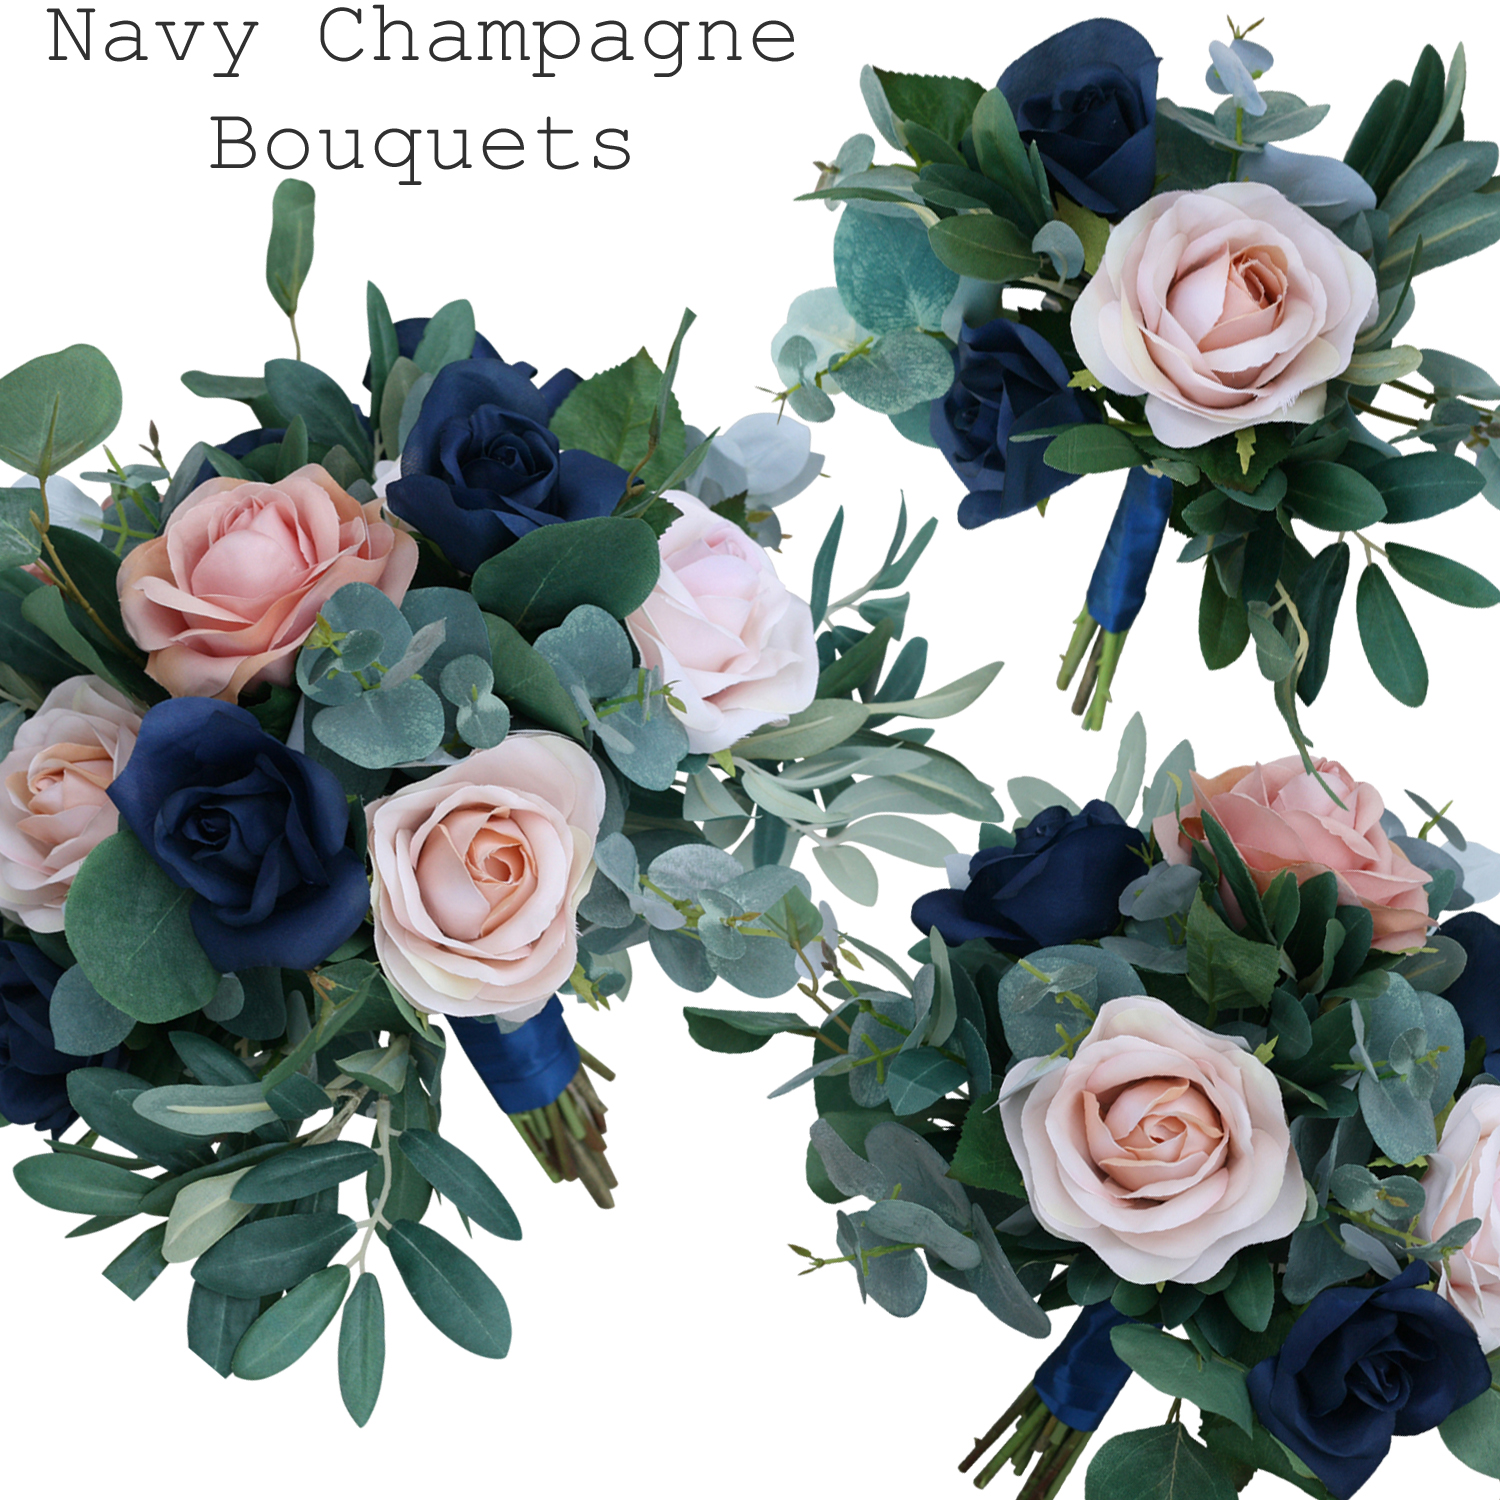 navy-champagne-bouquets-collage.jpg